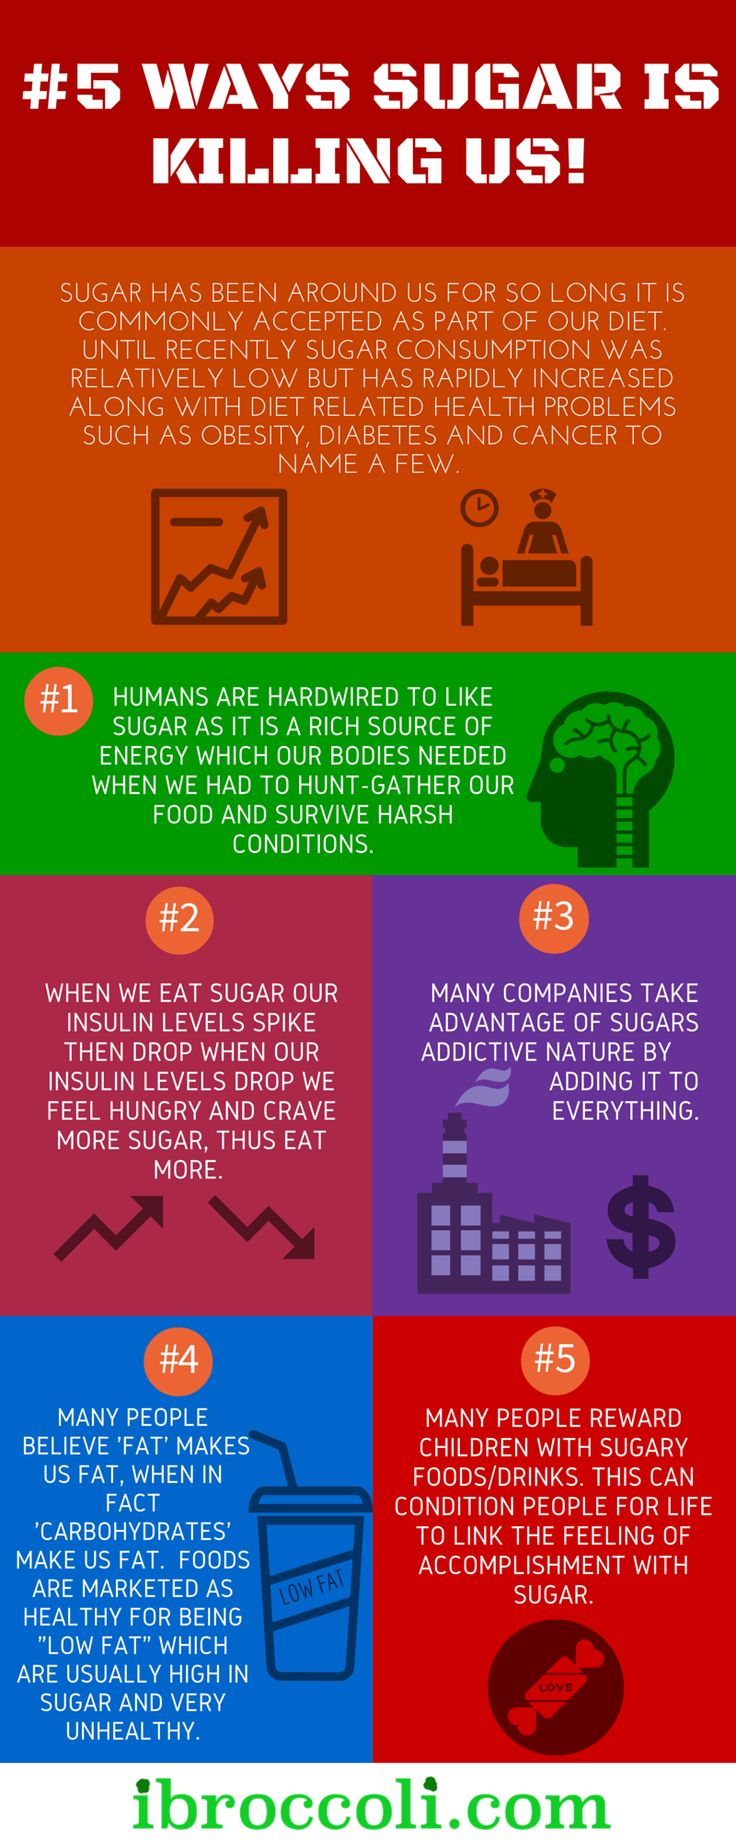 #5 WAYS SUGAR KILLS Visit www.ibroccoli.com and download our free ebook on how to lose fat. #diet #Fatloss #weightloss #exercise #sugar